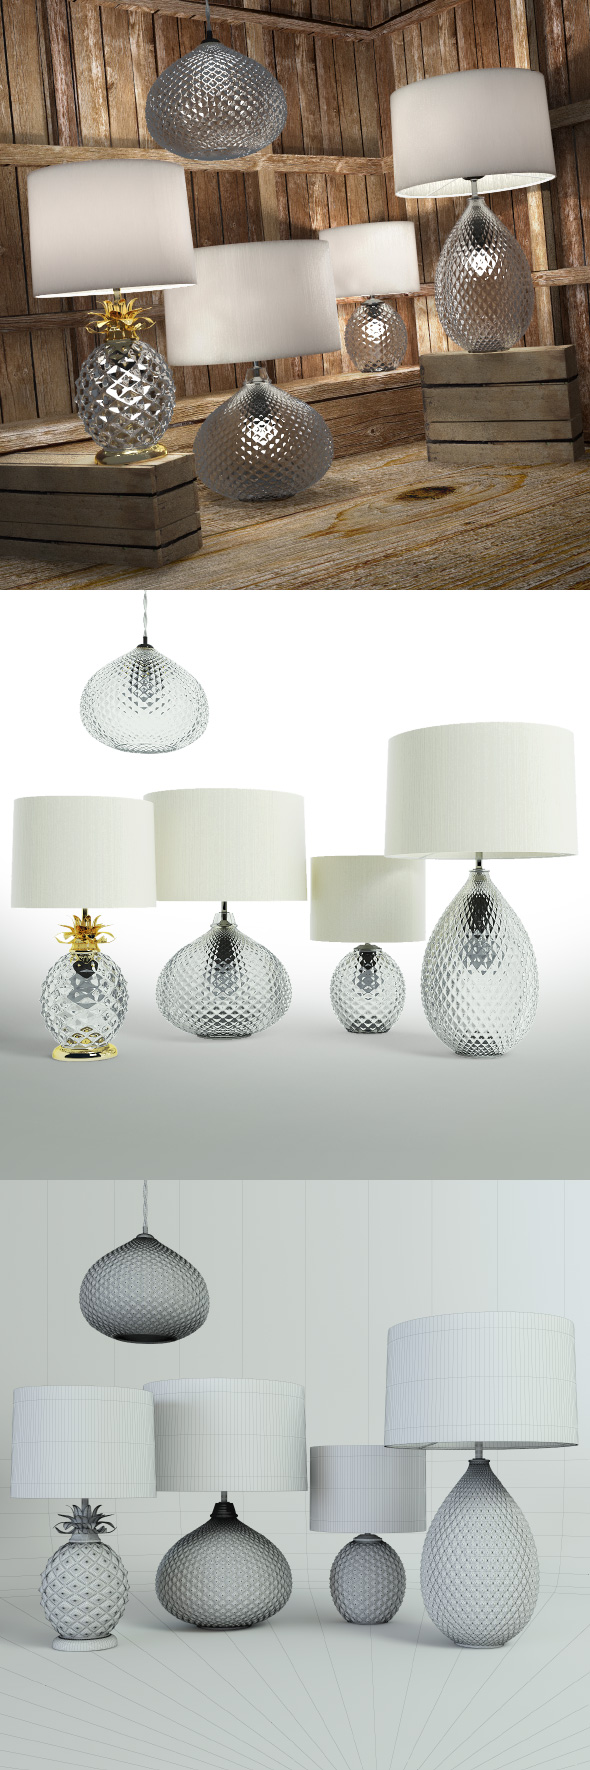 Decorative lamps Glamour - 3DOcean Item for Sale